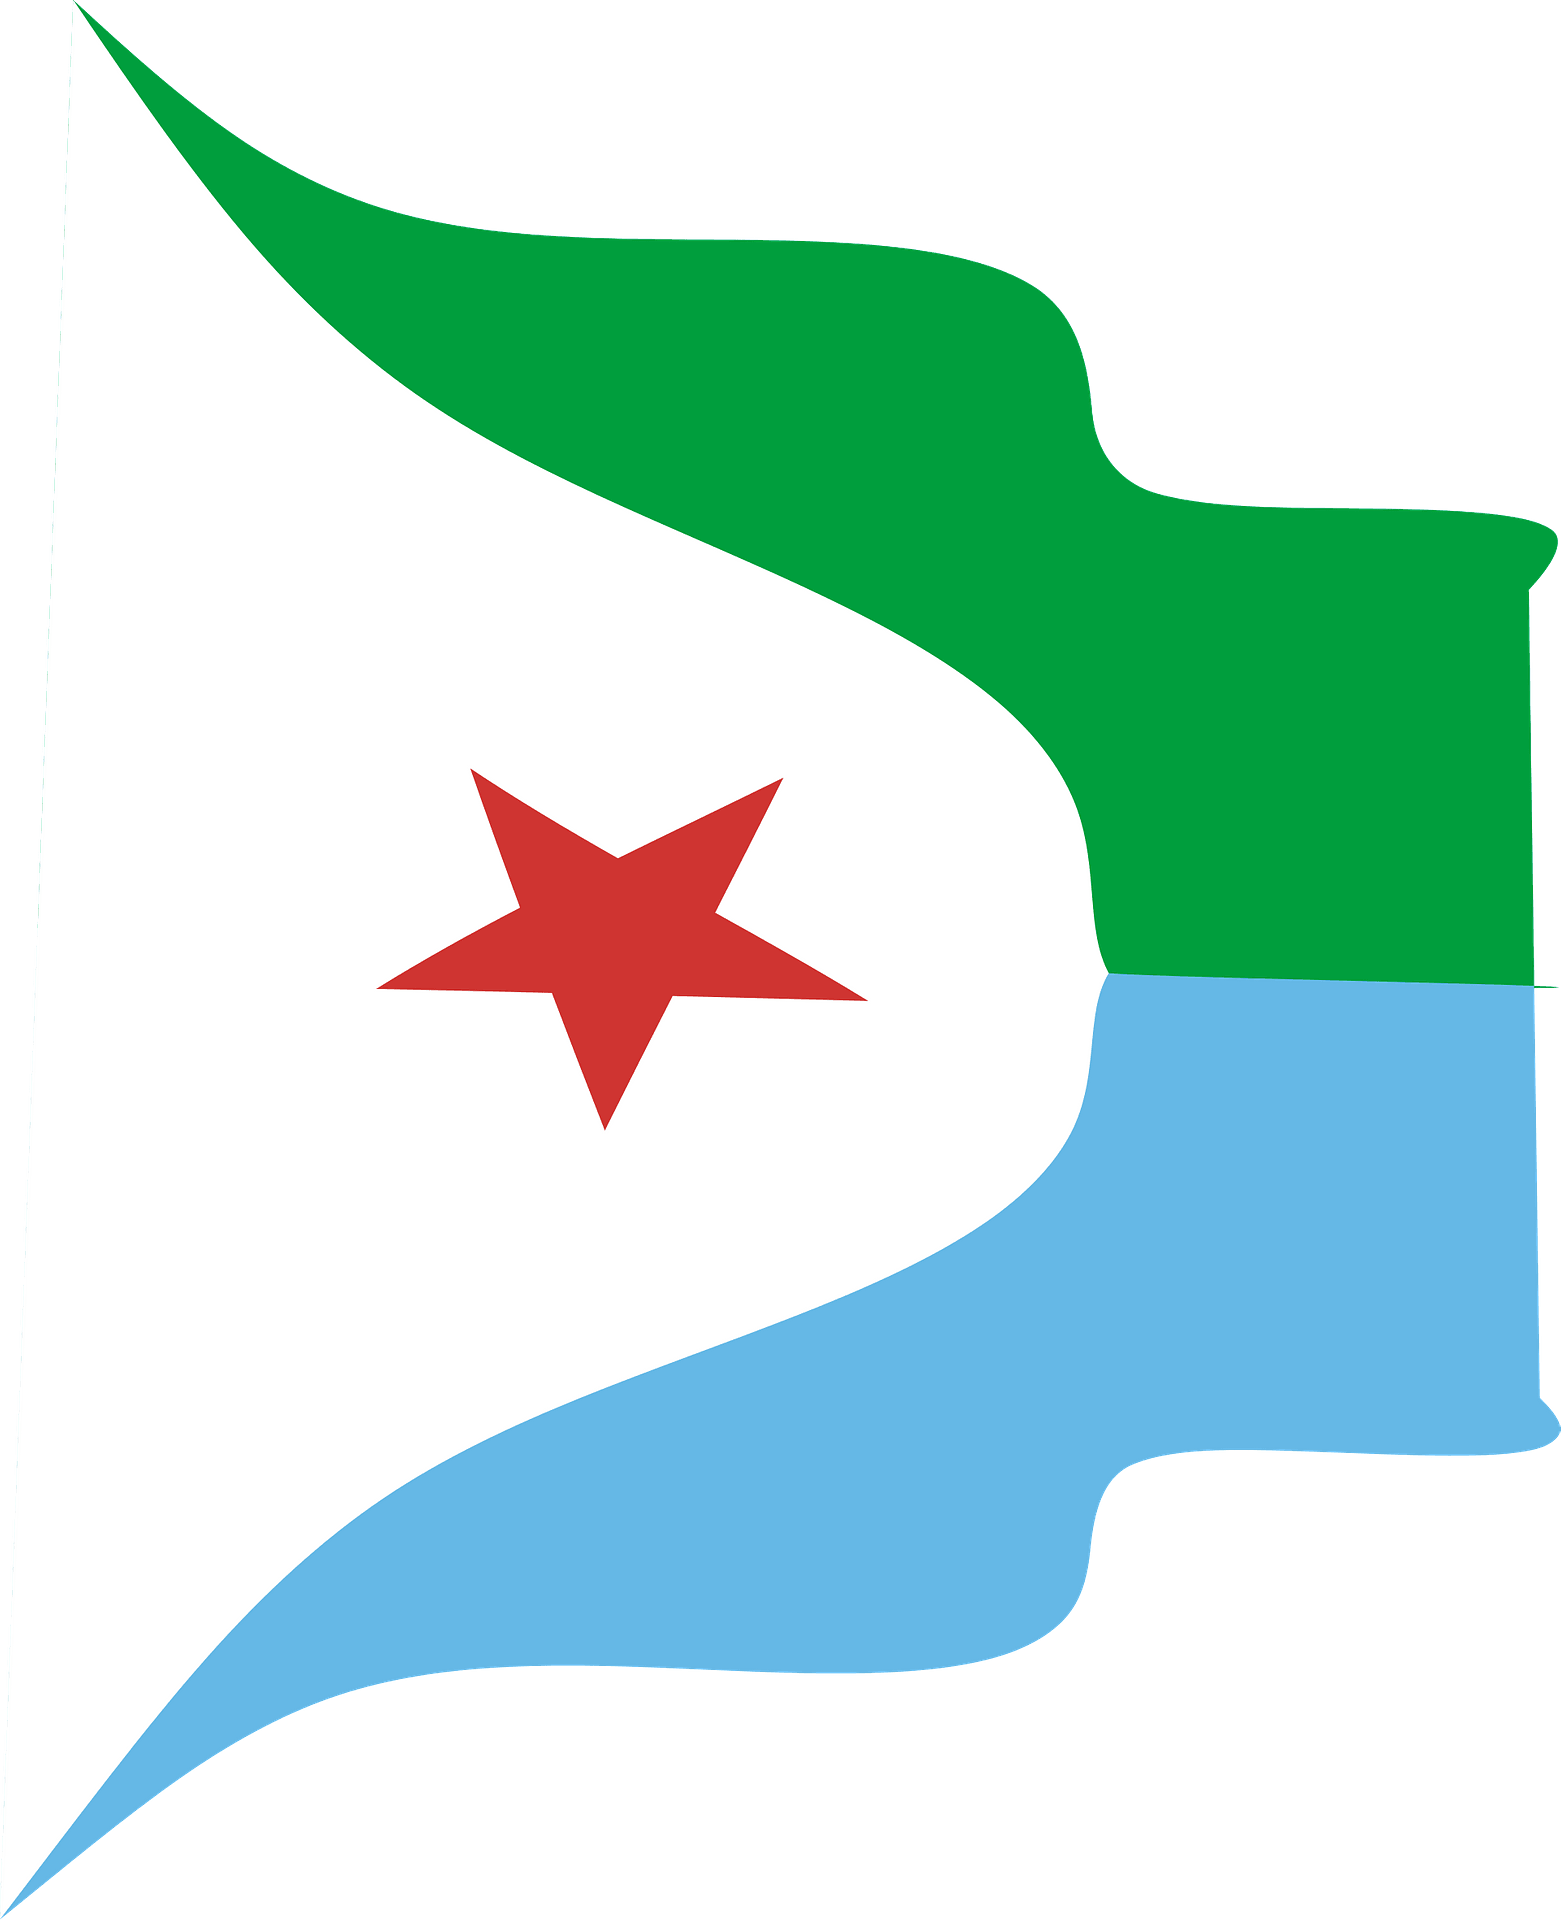 Djibouti Wavy Flag Clipart Free Download Transparent Png Creazilla